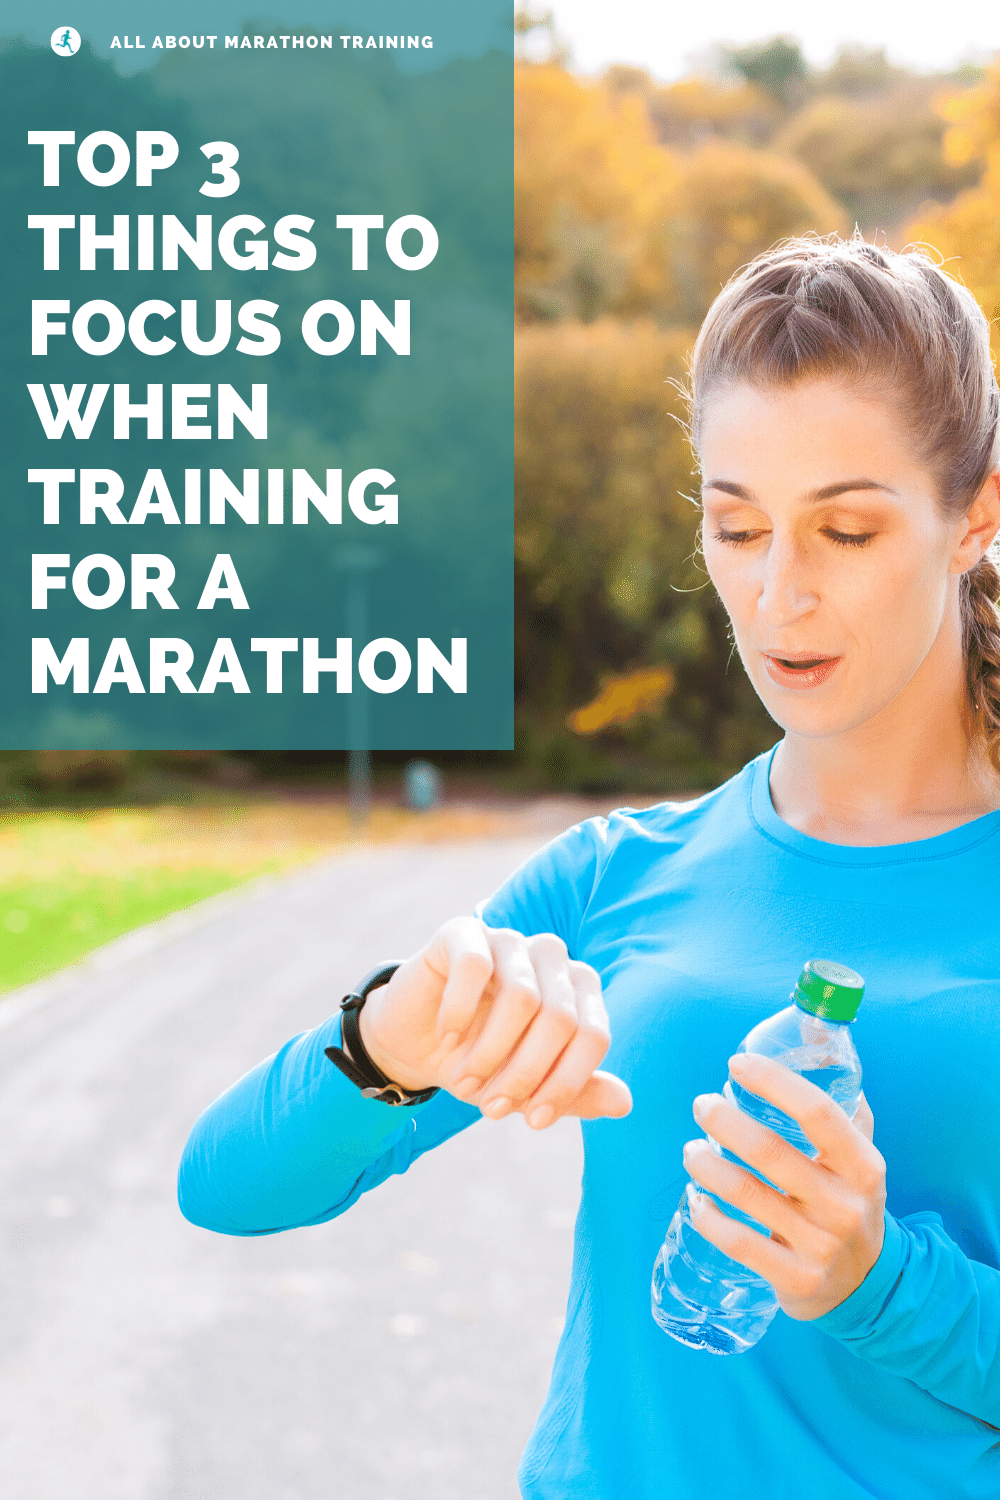 3 Most Important Things when training for a marathon